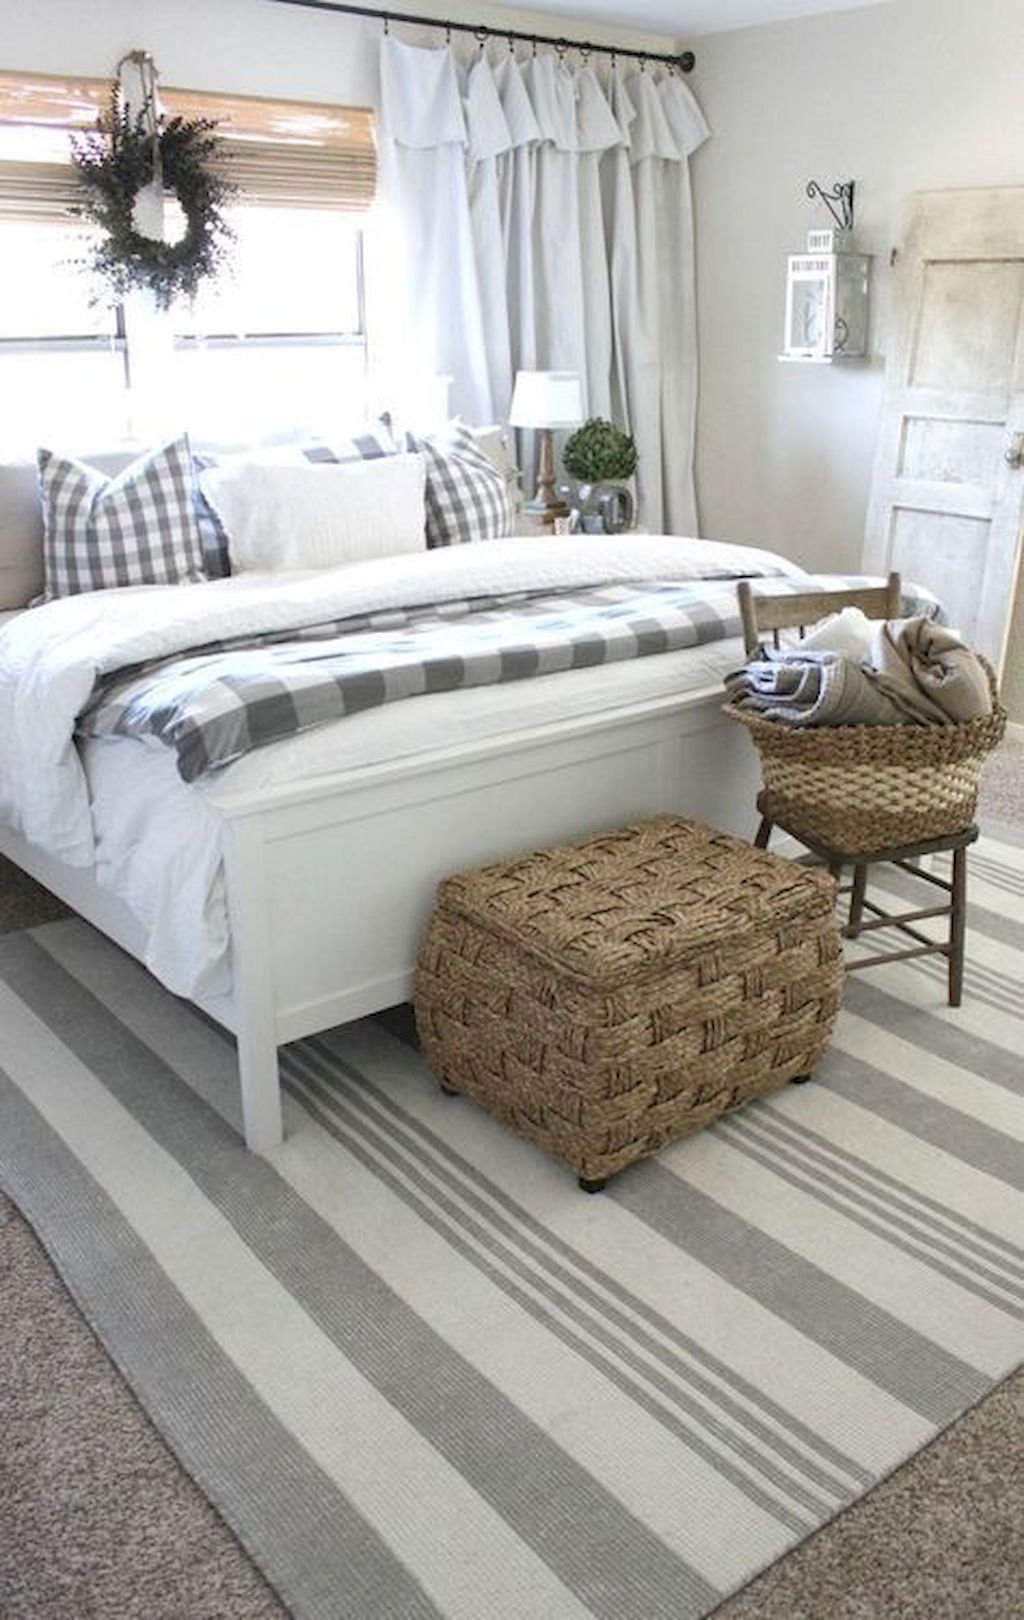 Rustic Farmhouse Bedroom Master Suite (15 is part of Farmhouse bedroom Master - Rustic Farmhouse Bedroom Master Suite (15)